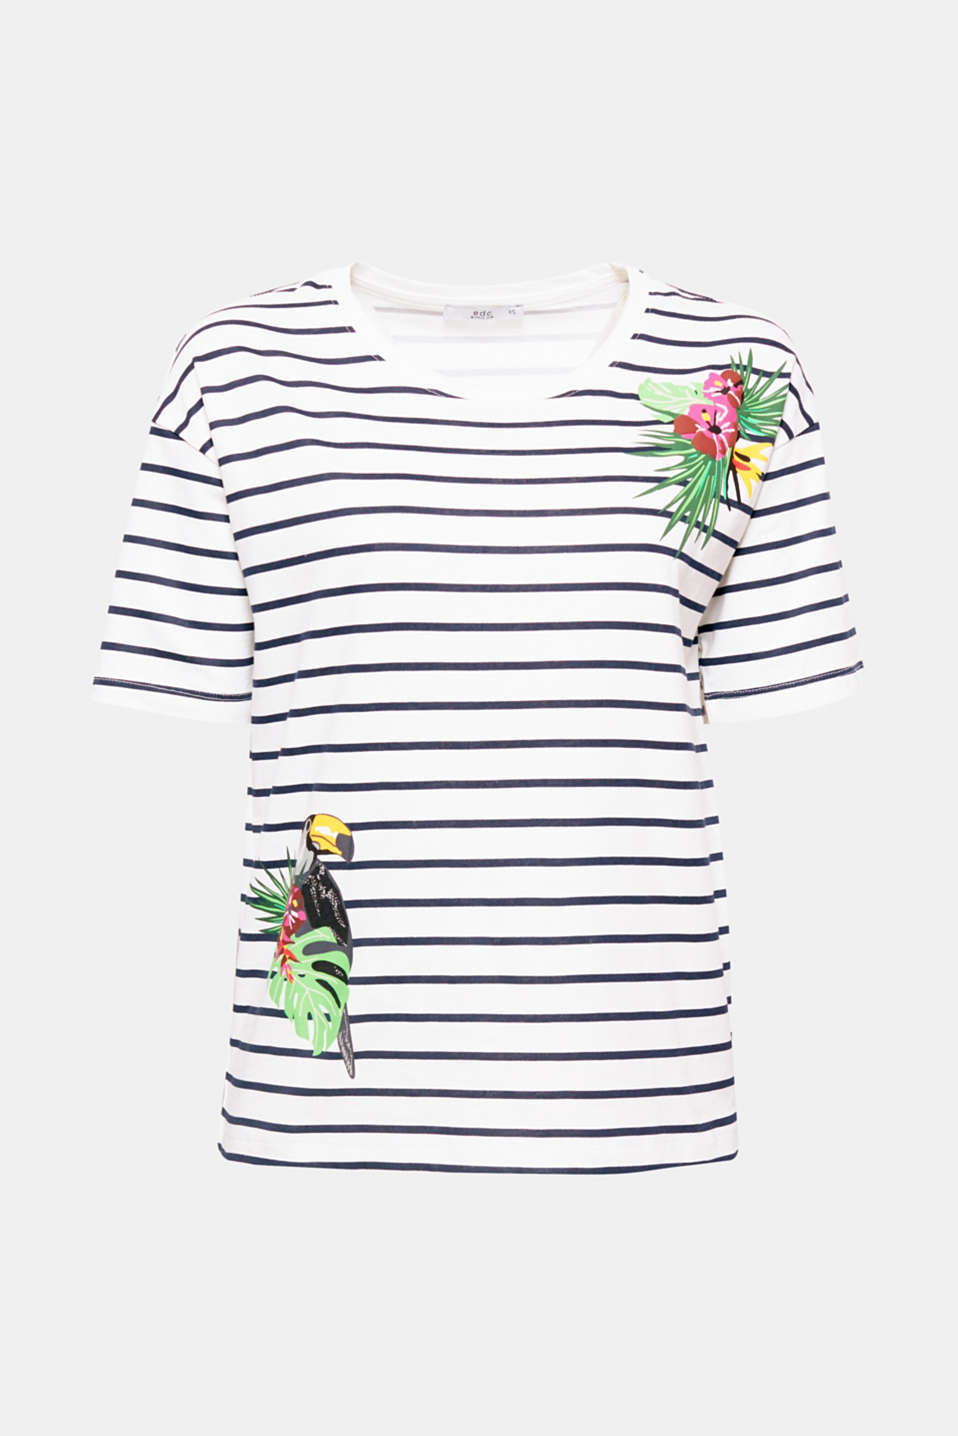 The mix of nautical stripes and tropical motifs gives this soft cotton T-shirt a unique look.